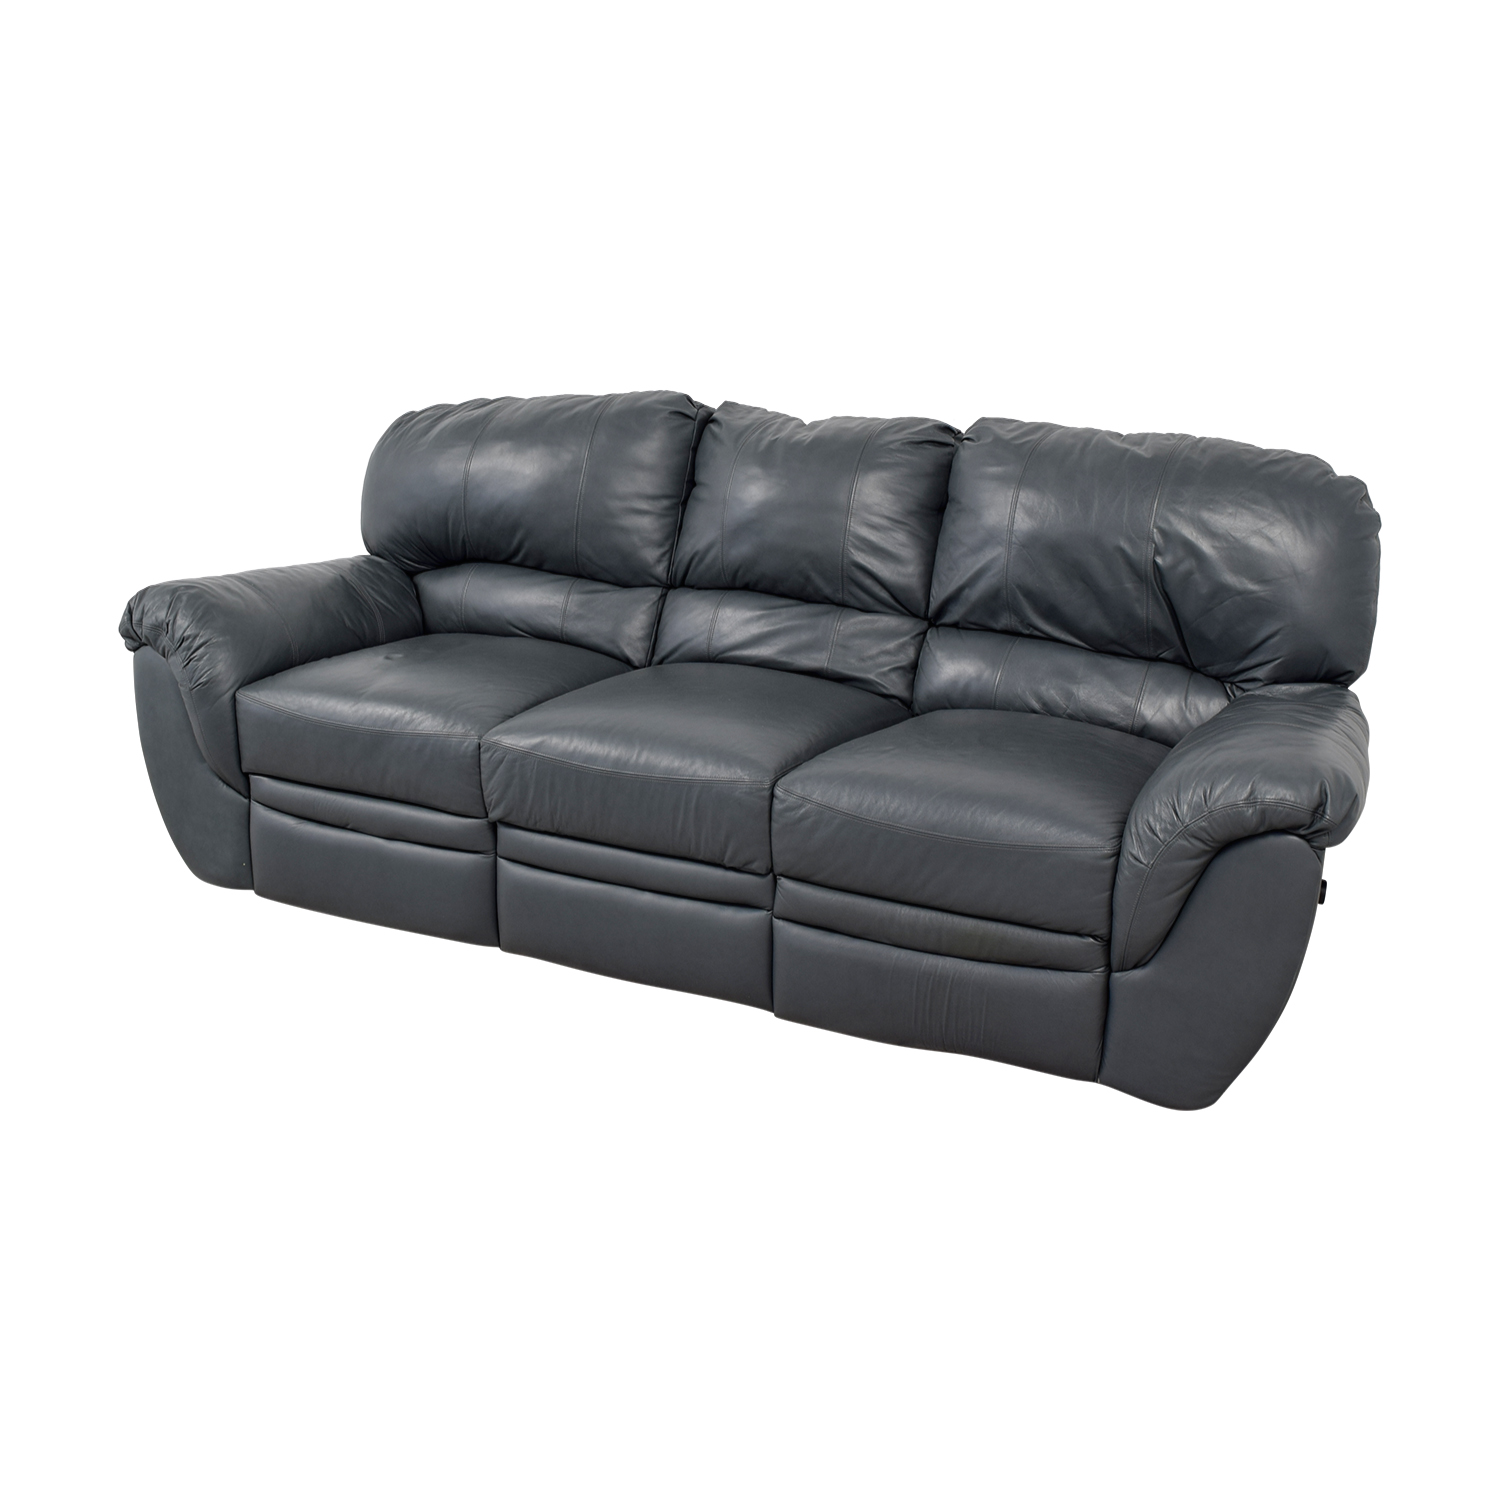 berkline recliner sofa patio furniture and chairs 64 off reclining sofas